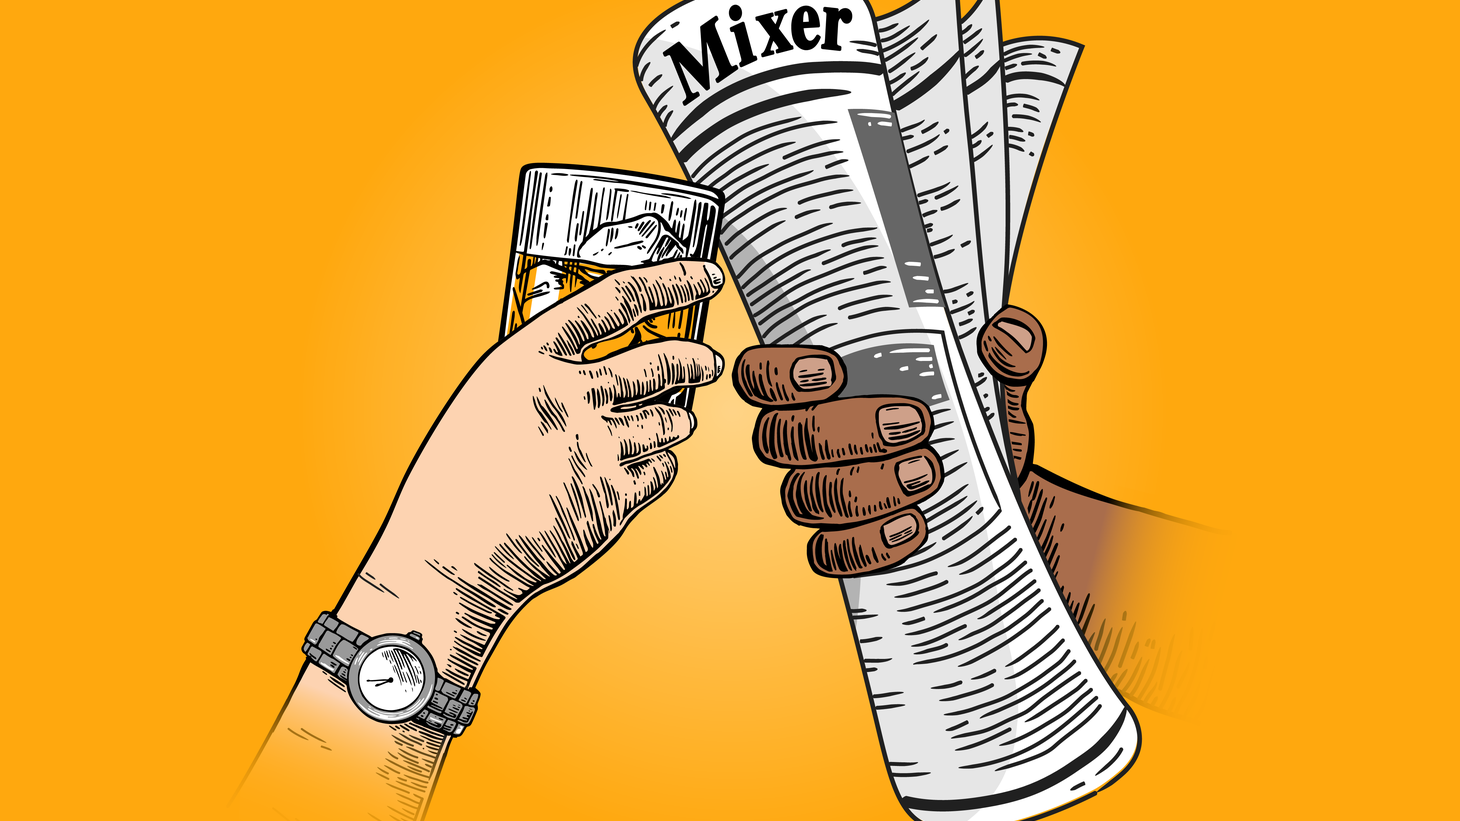 Joel Rubin from the LA Times joins KCRW's Steve Chiotakis for this week's Mixer.